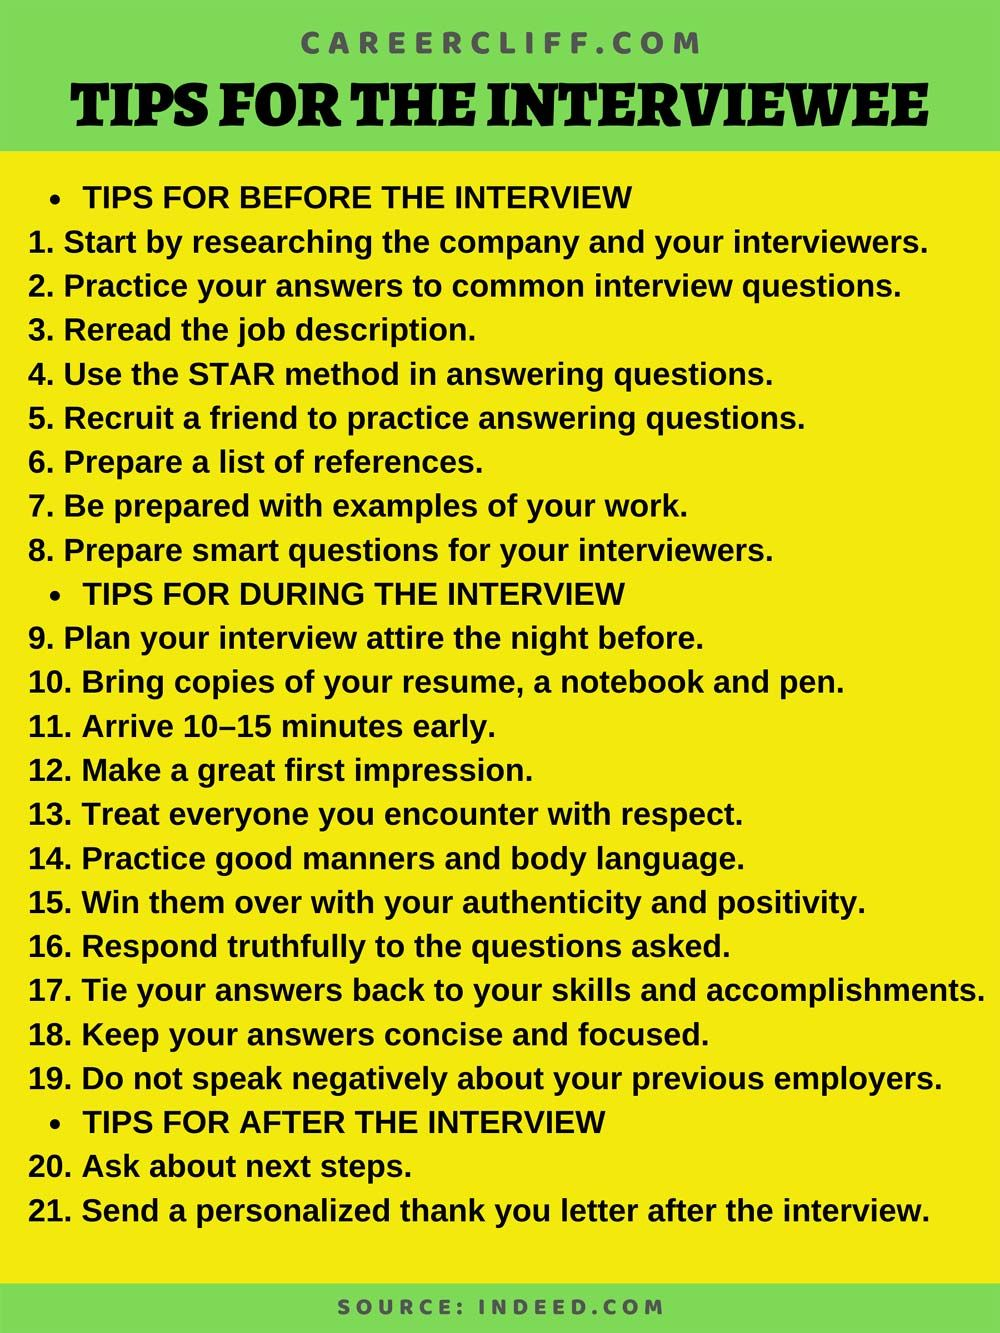 tips for first time interviewees tips for interviewee interview tips phone interview tips interview questions for nursing interview questions teaching job interview tips interview skills interview techniques skype interview skype interview tips video interview tips group interview tips preparing for a phone interview interview questions for supervisors zoom interview tips virtual interview tips interview guidance phone in interview tips and trick interview interview tips and questions telephonic interview questions telephone interview tips interview preparation tips panel interview tips best interview tips interview advice second interview tips college interview tips retail job interview questions graduate school interview questions last minute interview tips things to bring to an interview interview tips for students good interview tips final interview tips things to say in an interview to impress interview tips for teens first interview tips reddit interview tips internal interview tips nursing interview tips online interview tips sales interview tips successful interview teaching interview tips top interview tips job interview advice internship interview tips green card interview tips tips for a successful interview senior manager interview questions amazon interview tips things to say during an interview behavioral interview tips best things to say in an interview 2nd interview tips phone interview tips reddit scholarship interview tips professional interview phone interview etiquette getting ready for an interview hirevue tips senior leadership interview questions in person interview tips engineering interview questions and answers tips for interviewing someone interviewing tips for interviewers icu nurse interview questions police interview tips hirevue interview tips interview tips youtube case study interview prep executive interview tips tips for interview questions successful job interview nailing an interview preparing for a second interview common engine